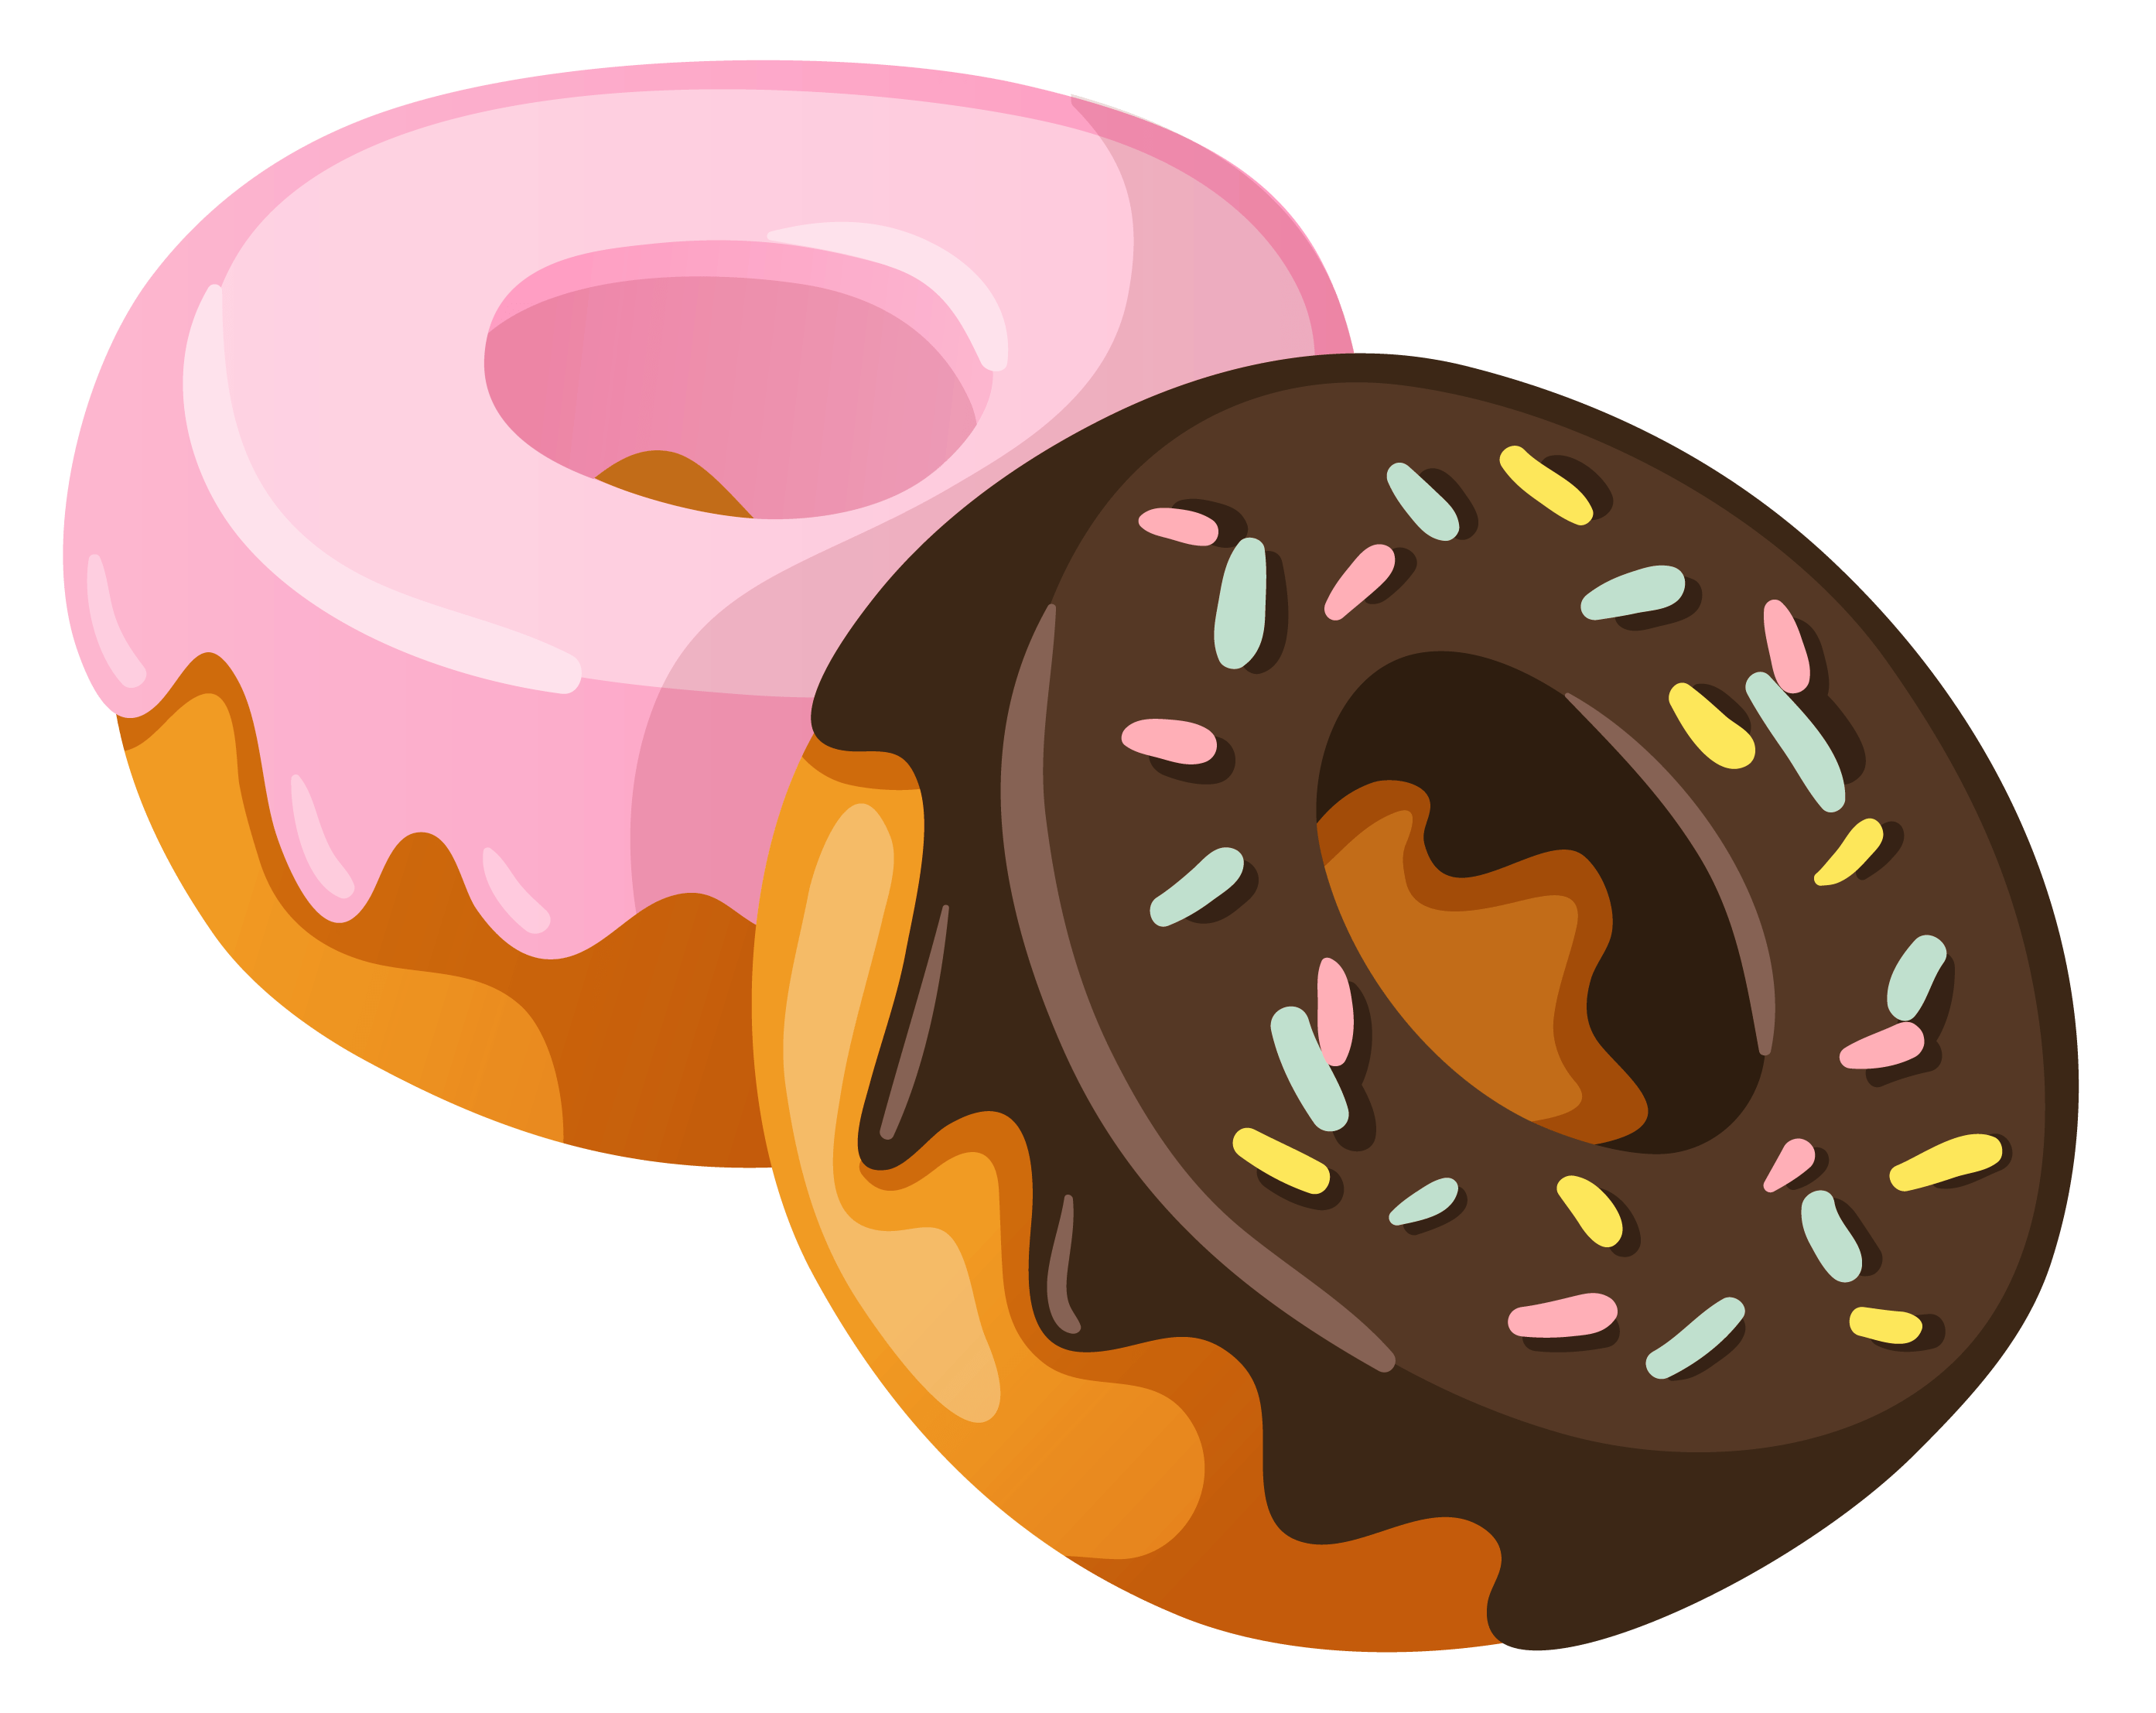 Donut clipart free vector freeuse download Donuts Clipart transparent PNG - StickPNG vector freeuse download